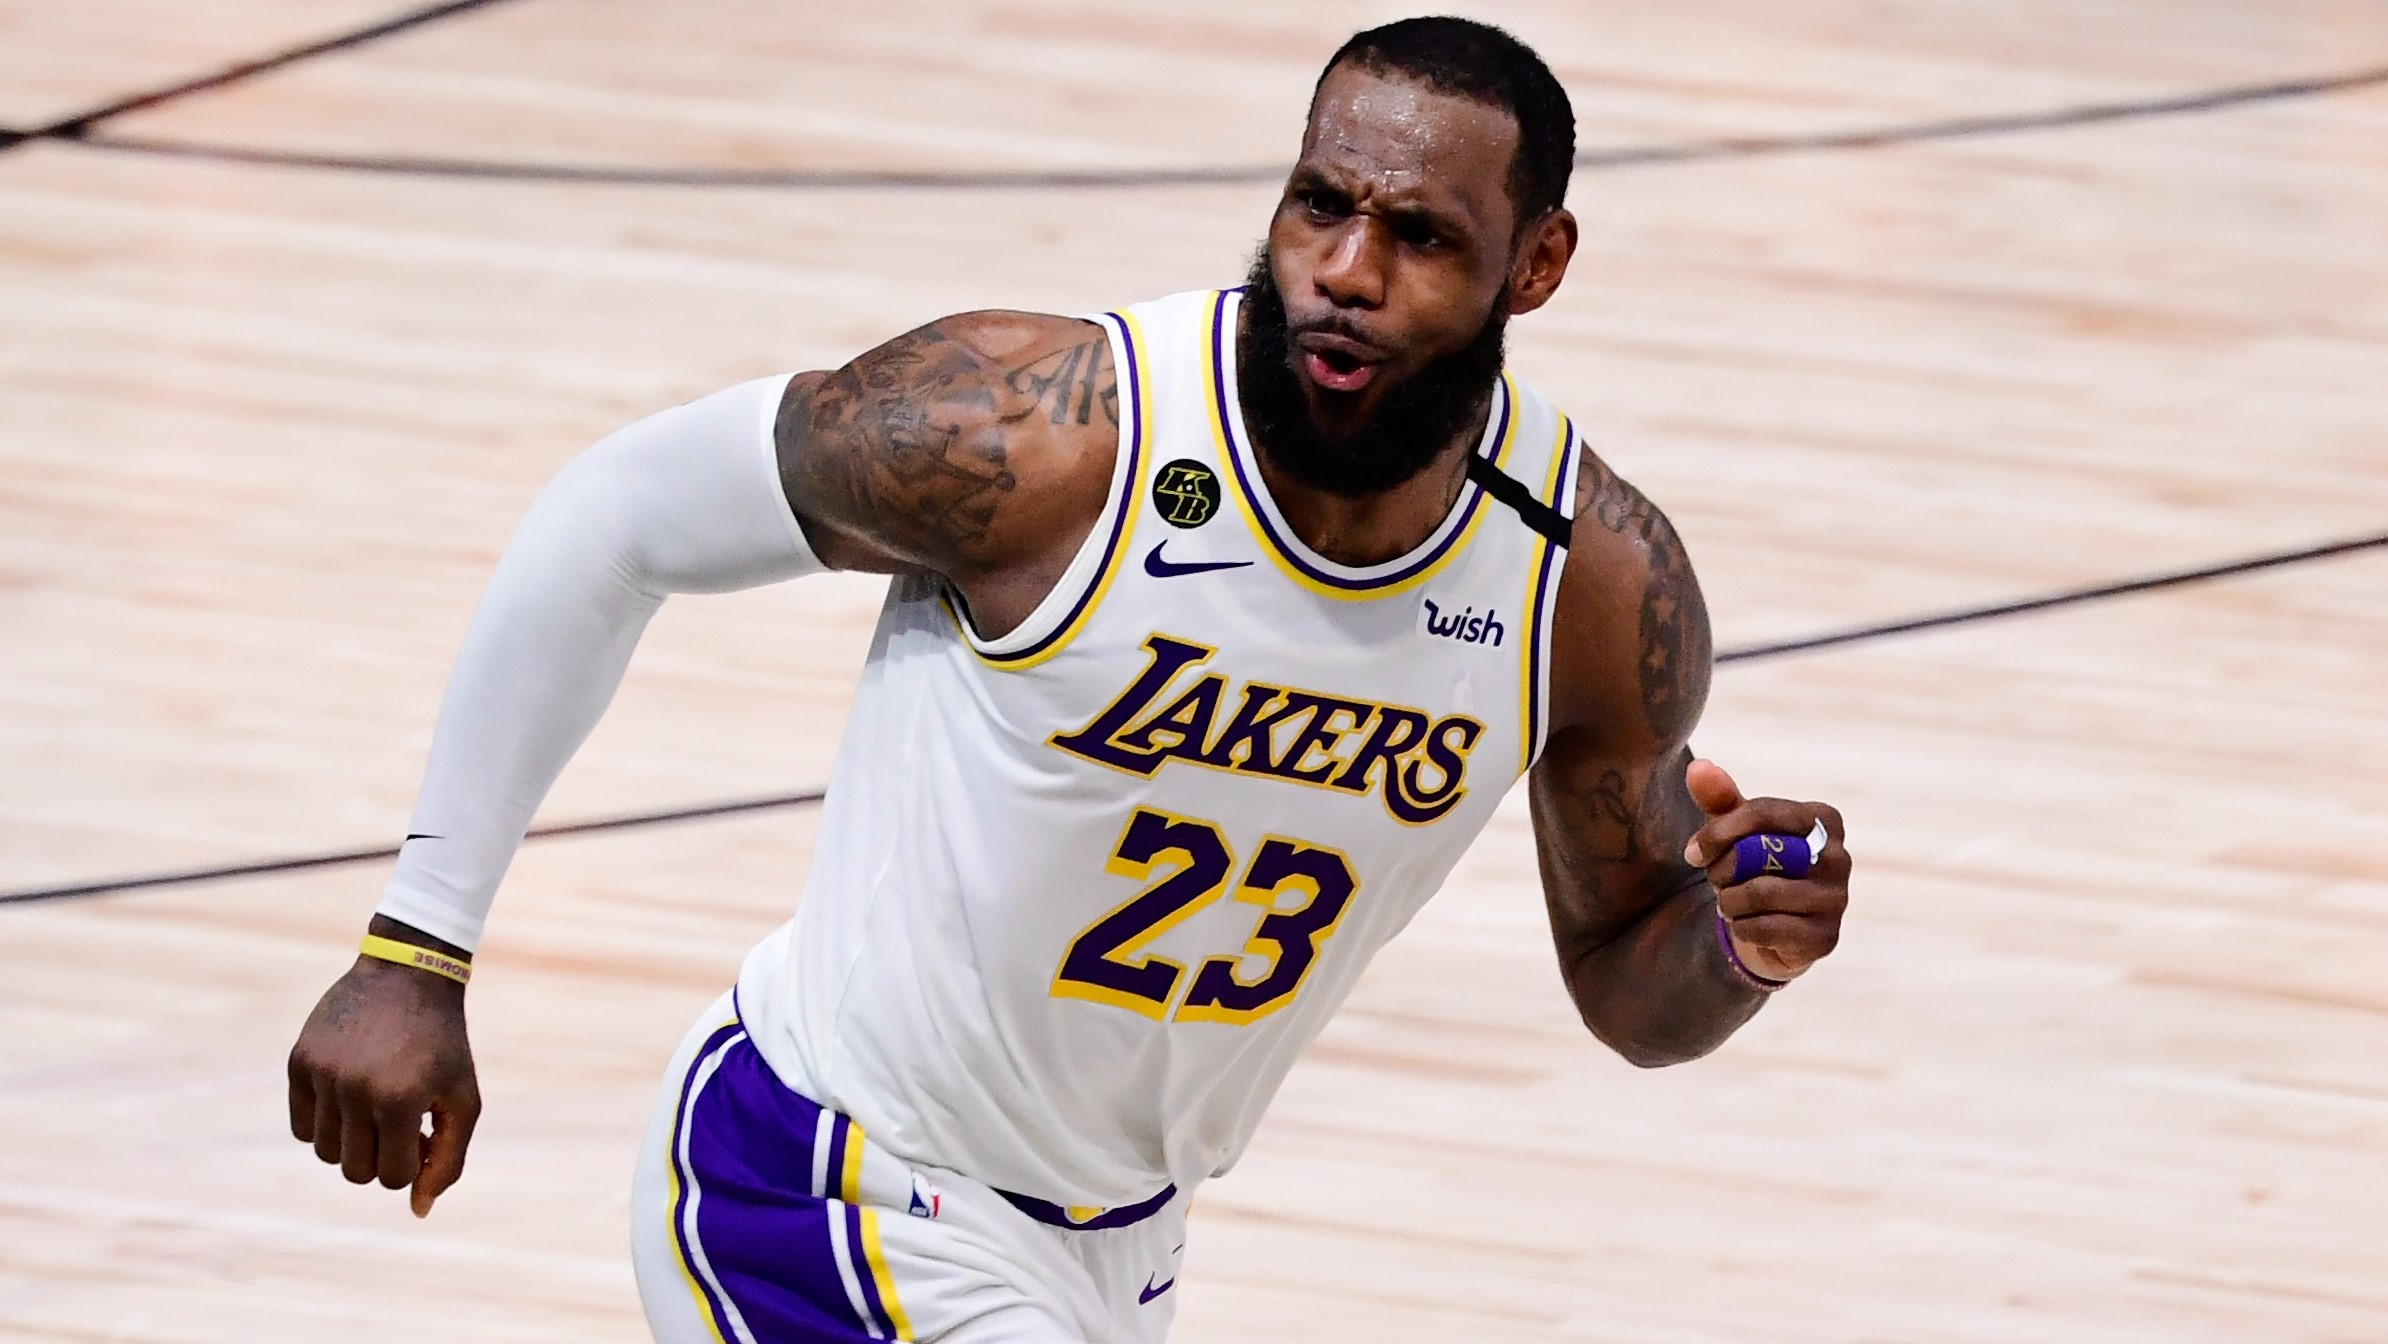 Nba Live Stream 2020 21 How To Watch The New Basketball Season Online From Anywhere Techradar